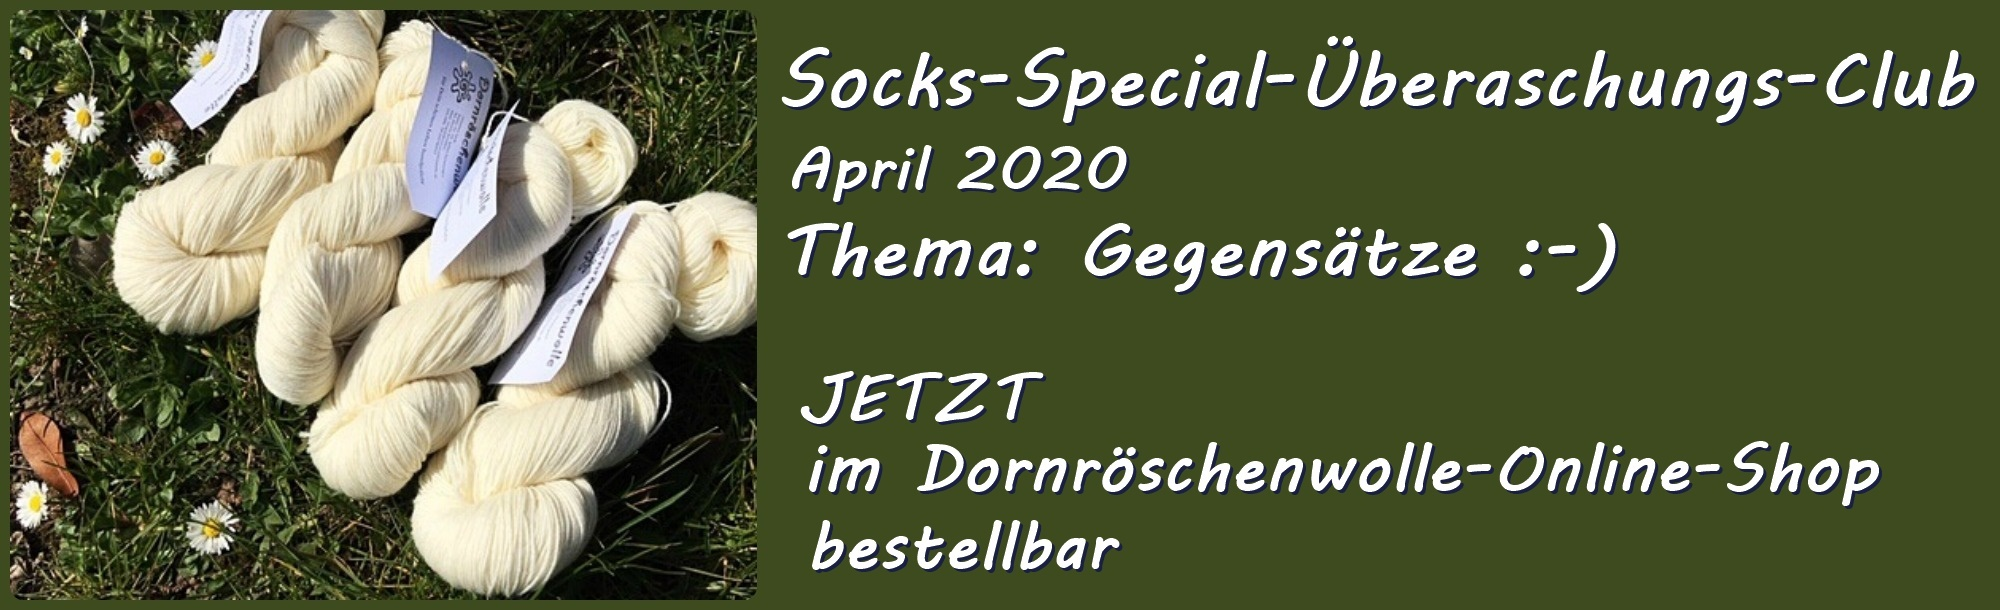 april_sock_special_club_bild_text